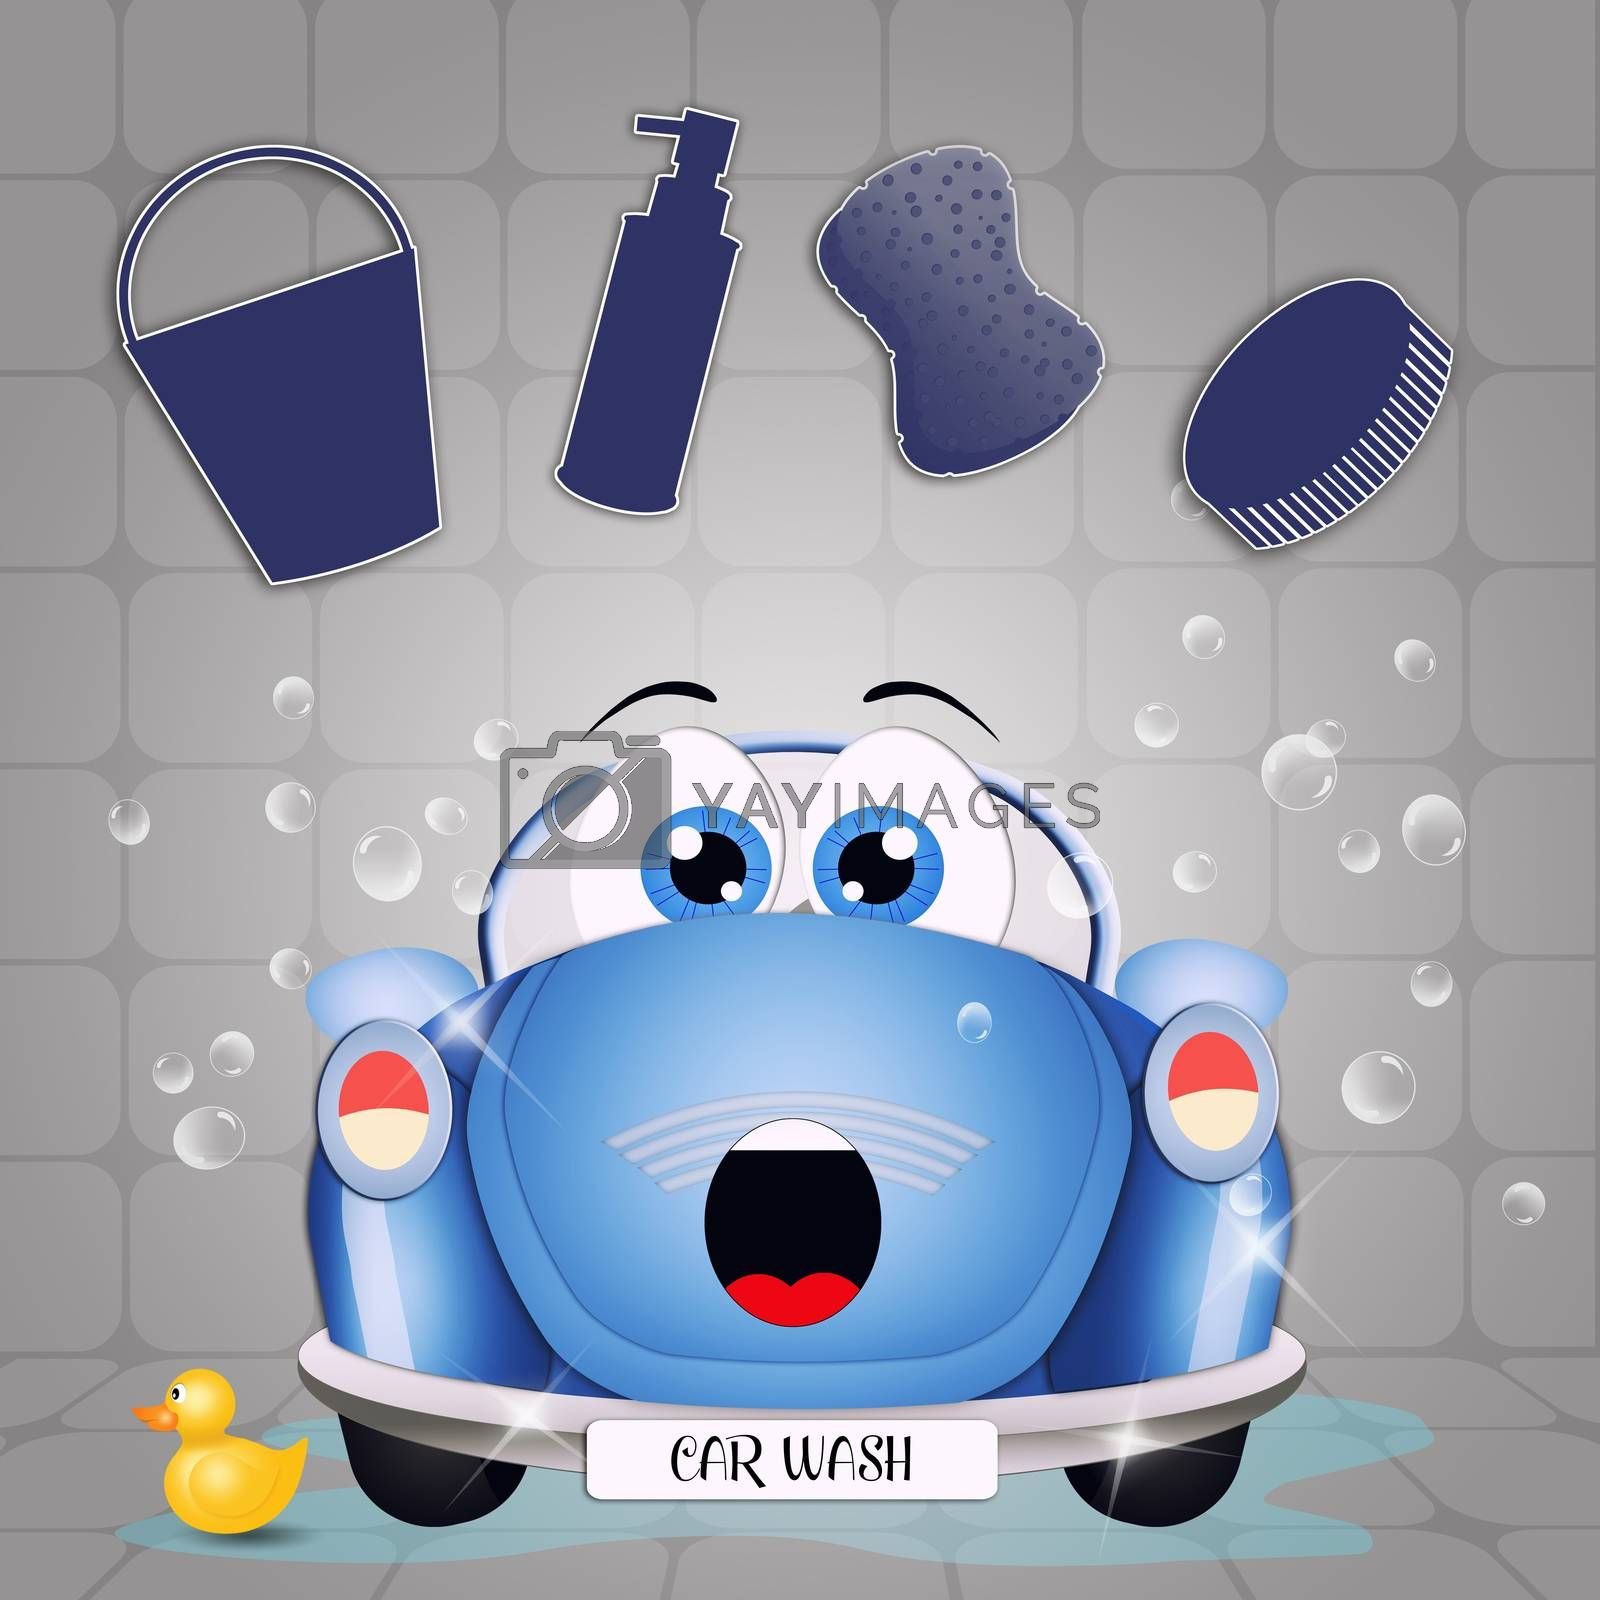 illustration of car washing